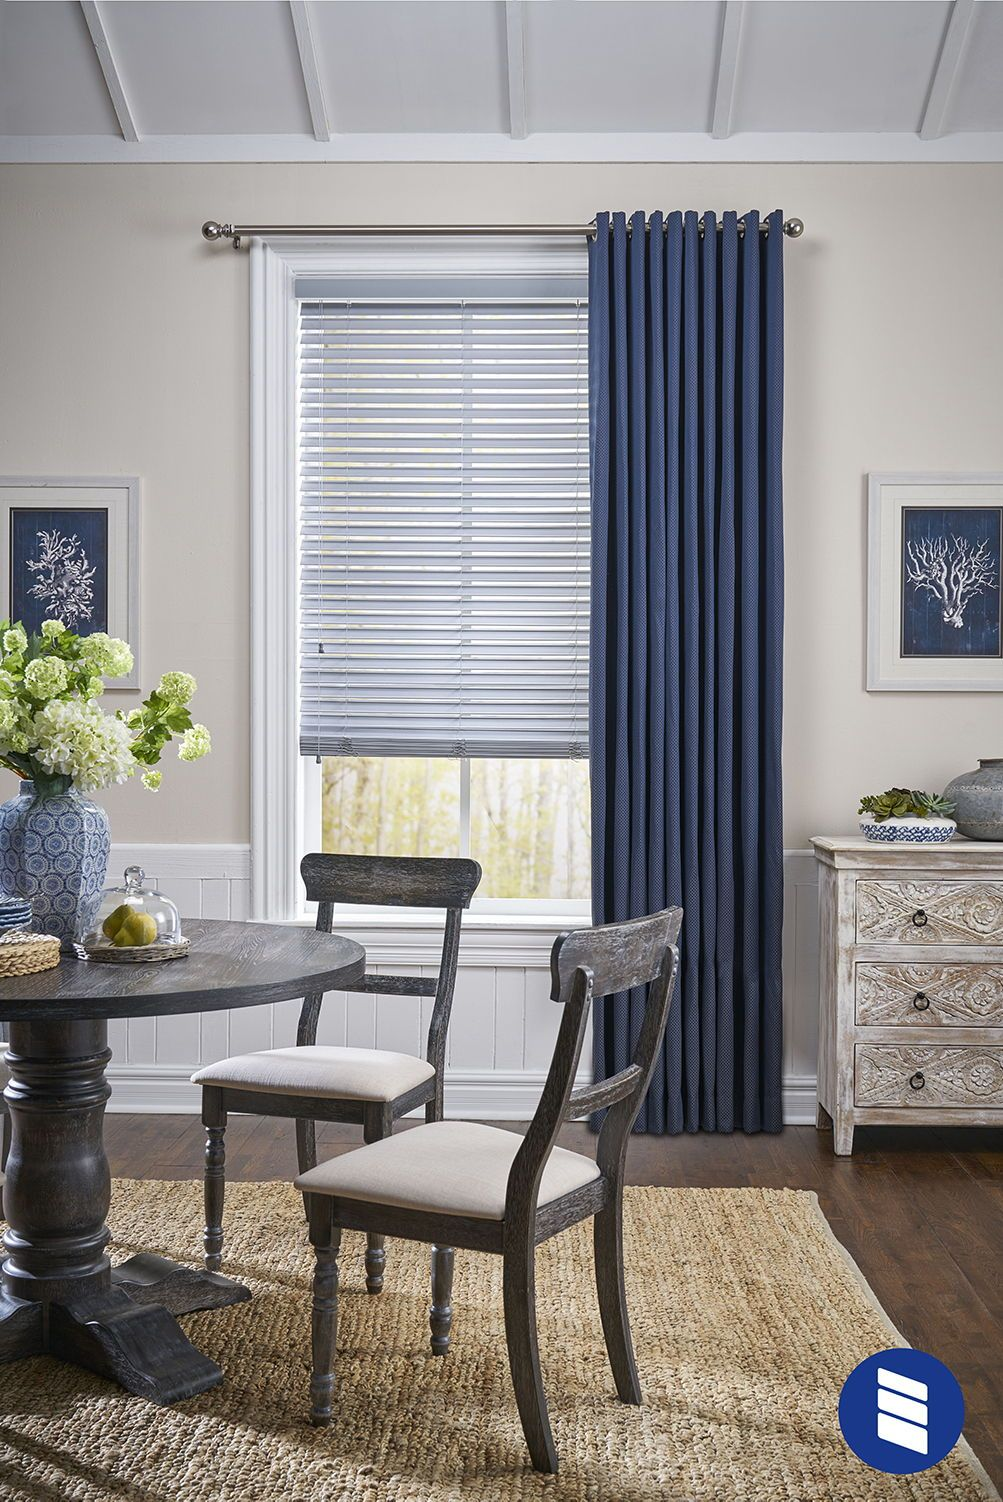 2 Inch Room Darkening Fabric Blinds Blinds Com In